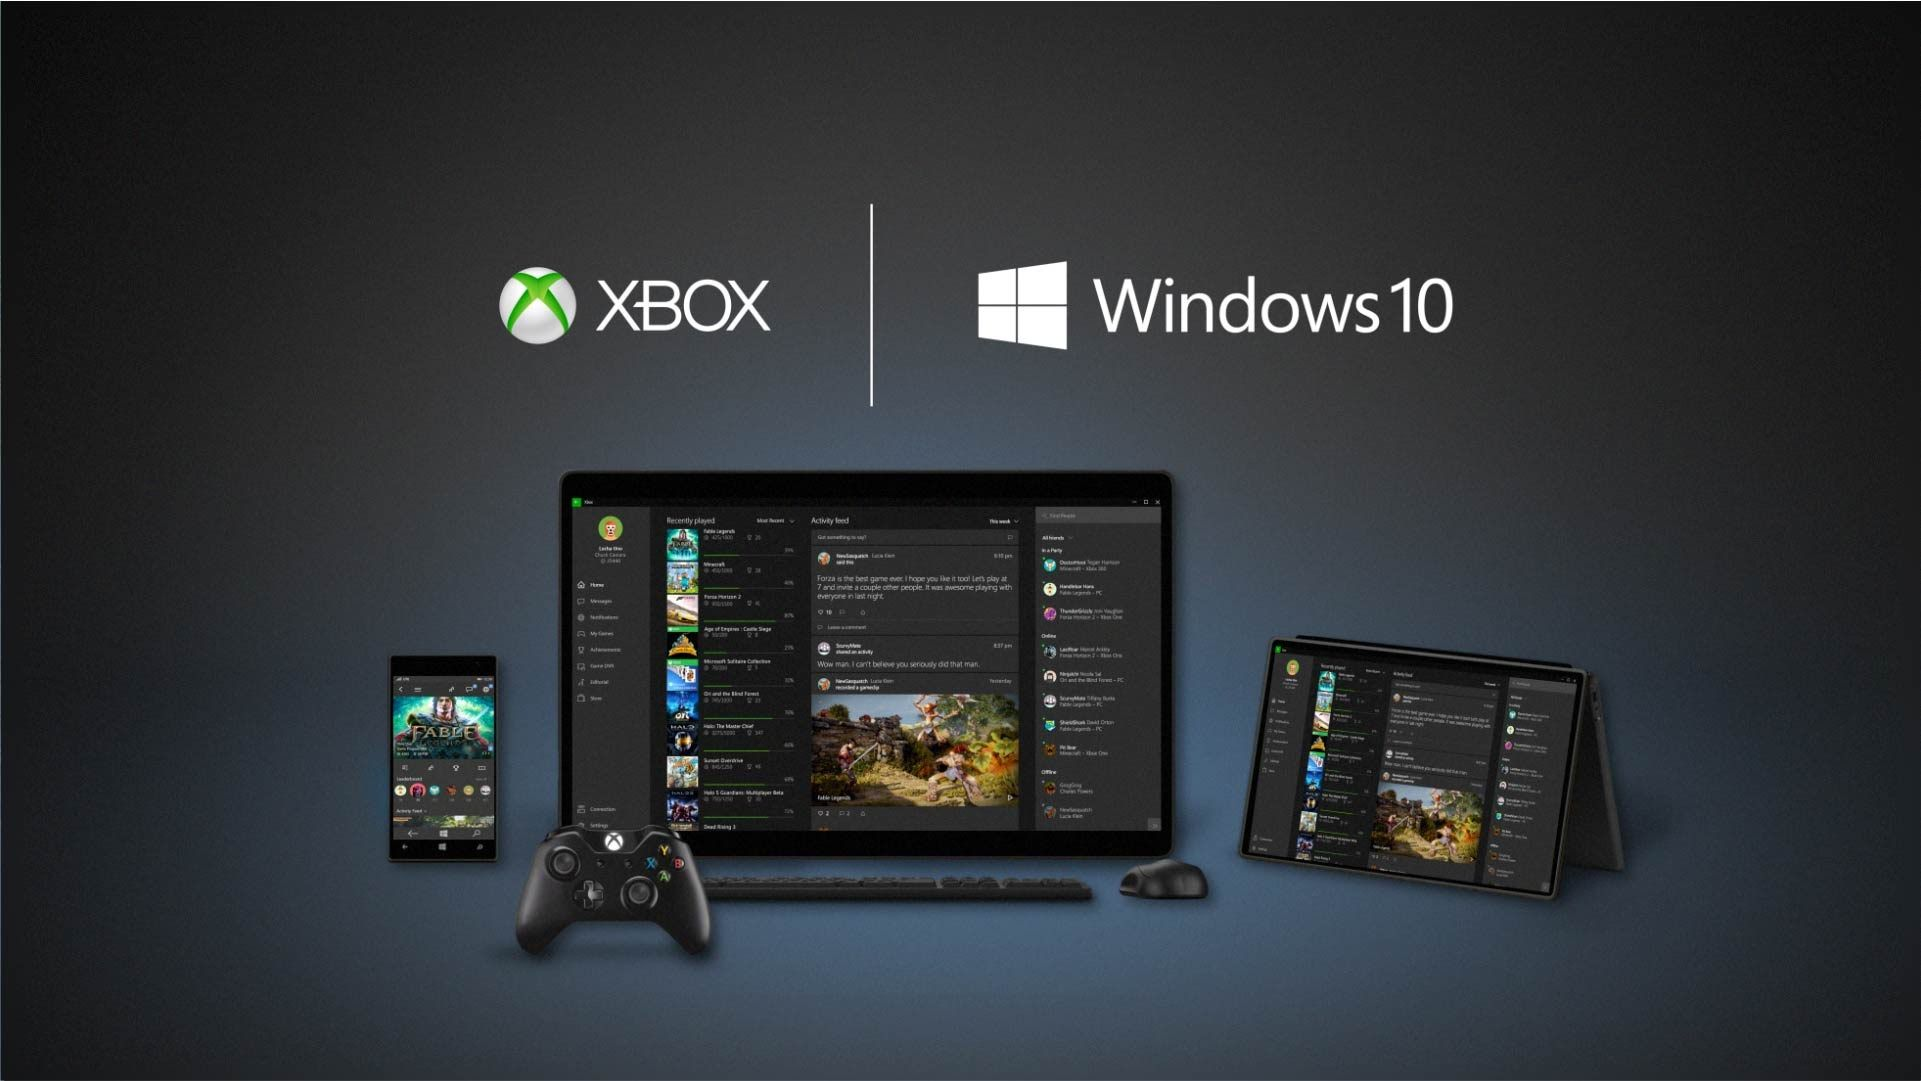 Microsoft Announces That Windows 10 Will Allow Users to